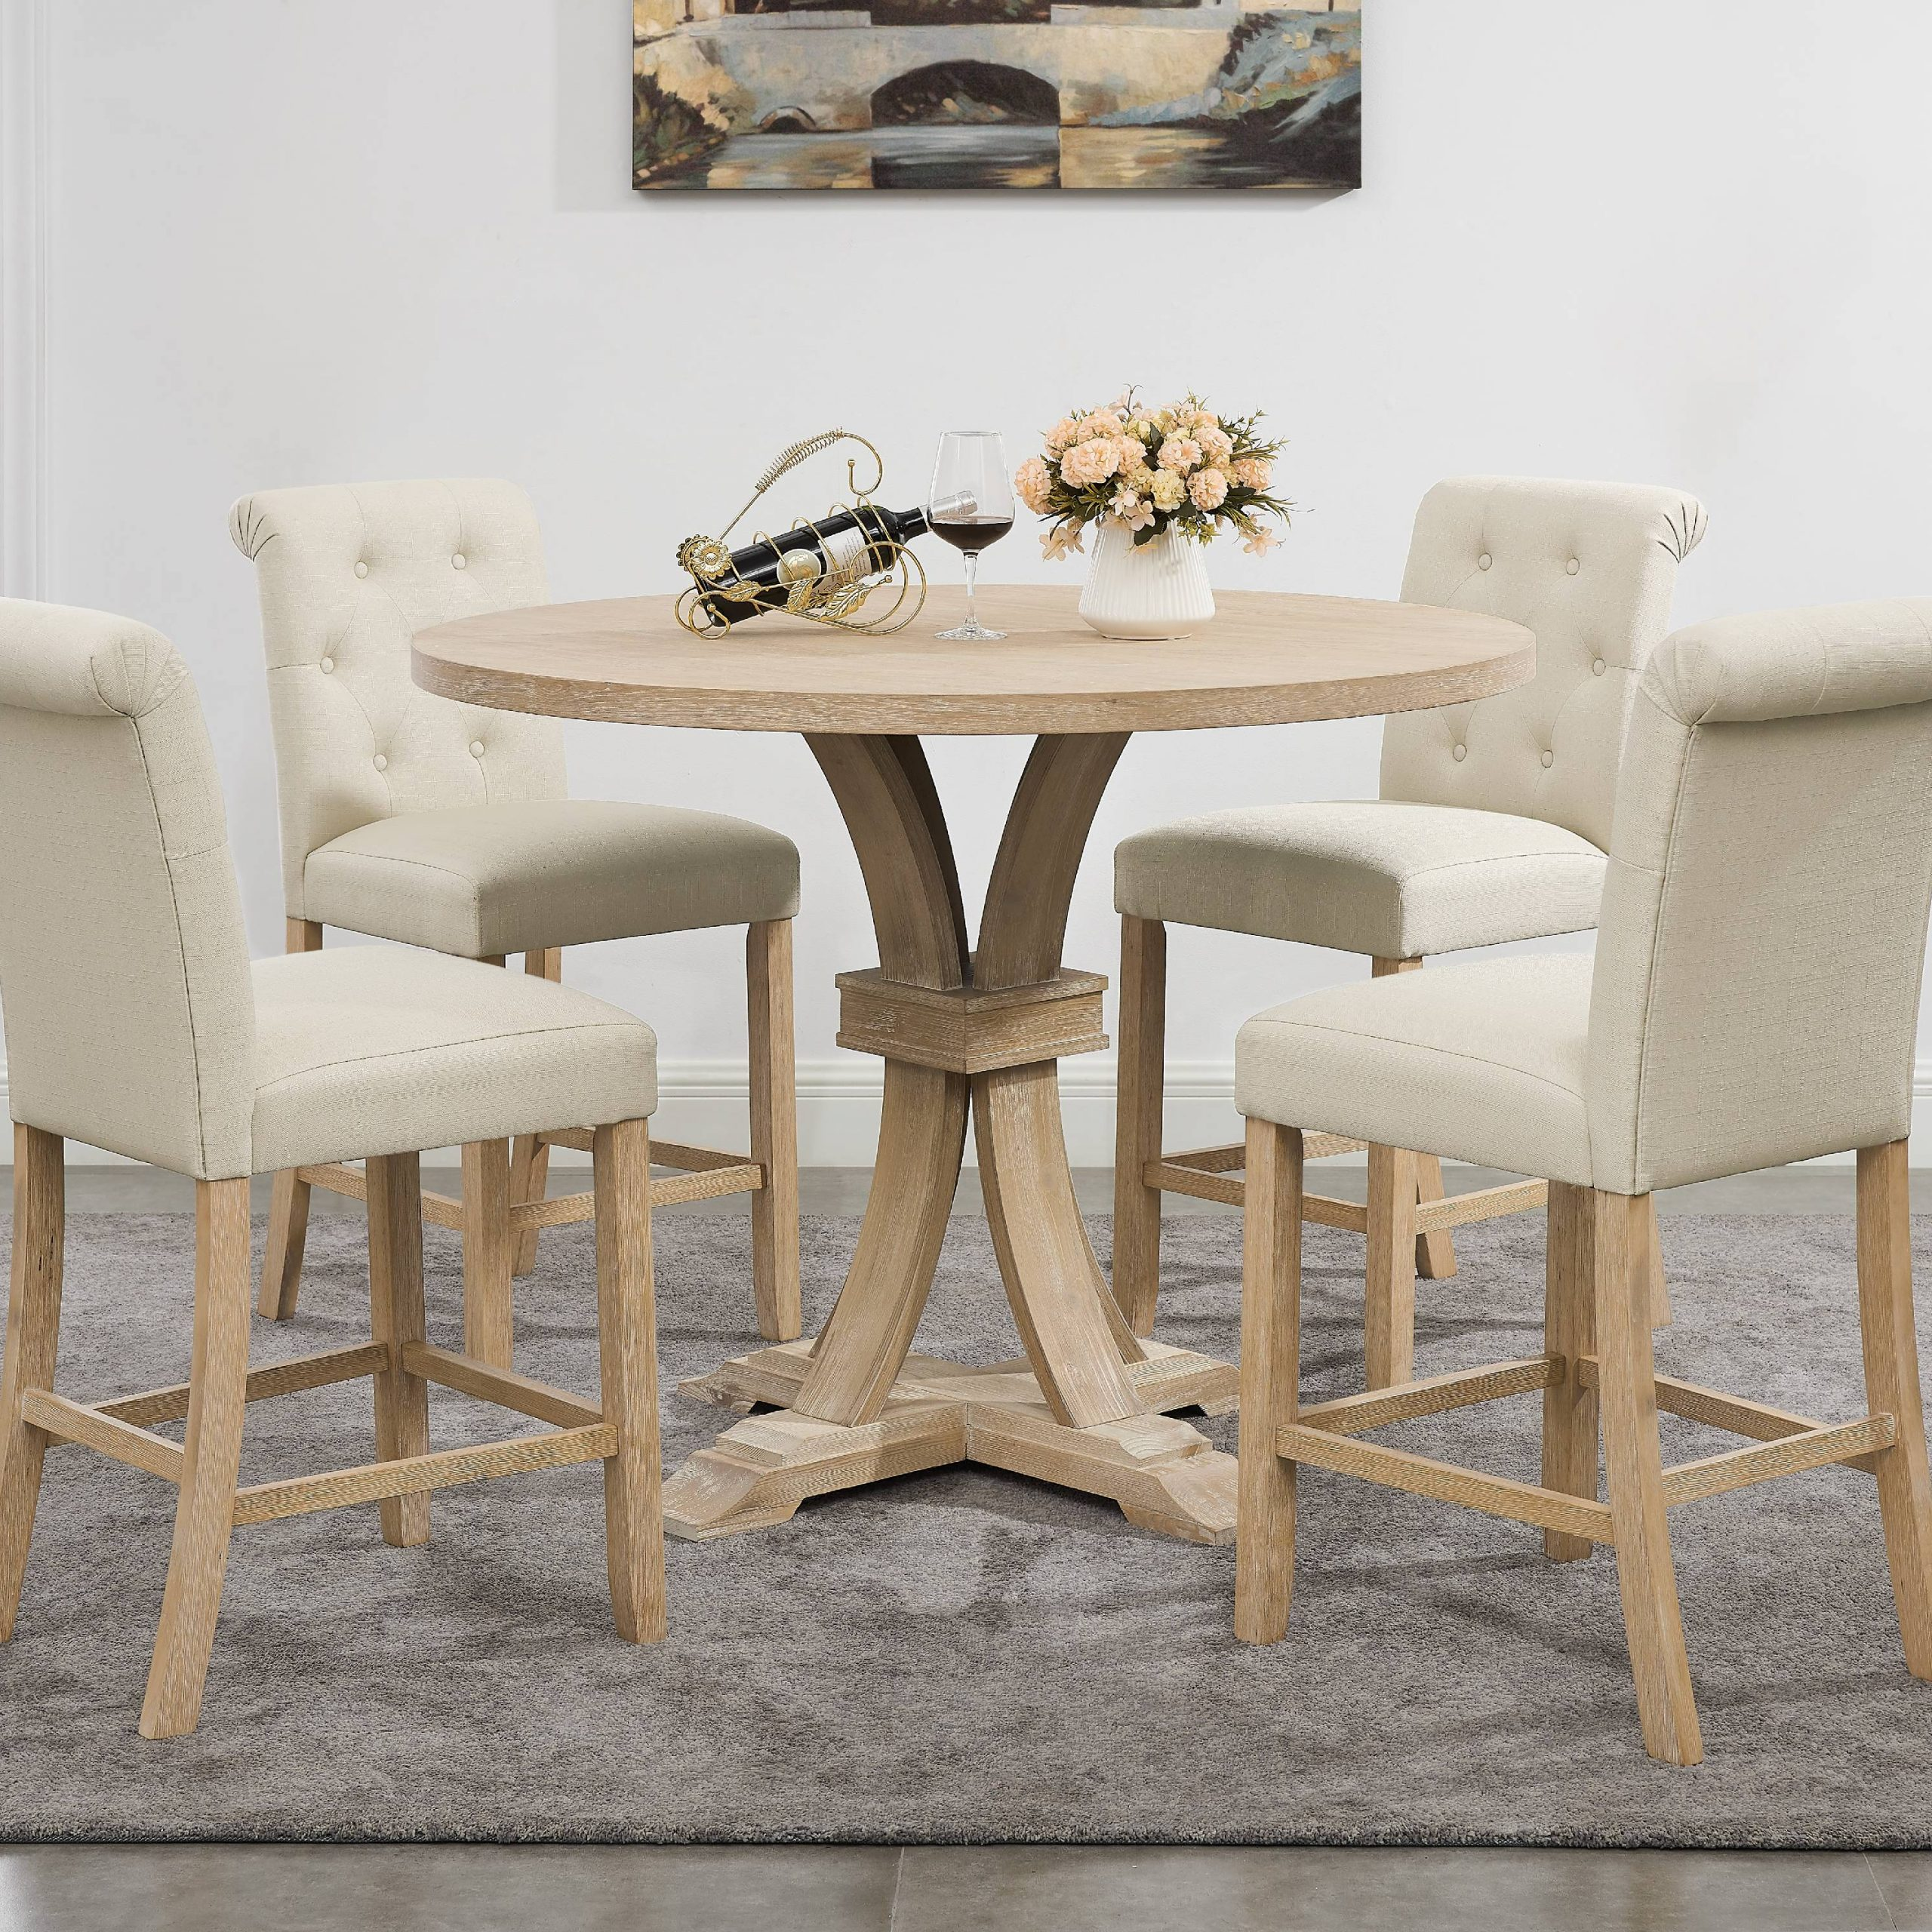 Siena White Washed Finished 5 Piece Counter Height Dining With Regard To Most Recently Released Nakano Counter Height Pedestal Dining Tables (View 4 of 15)